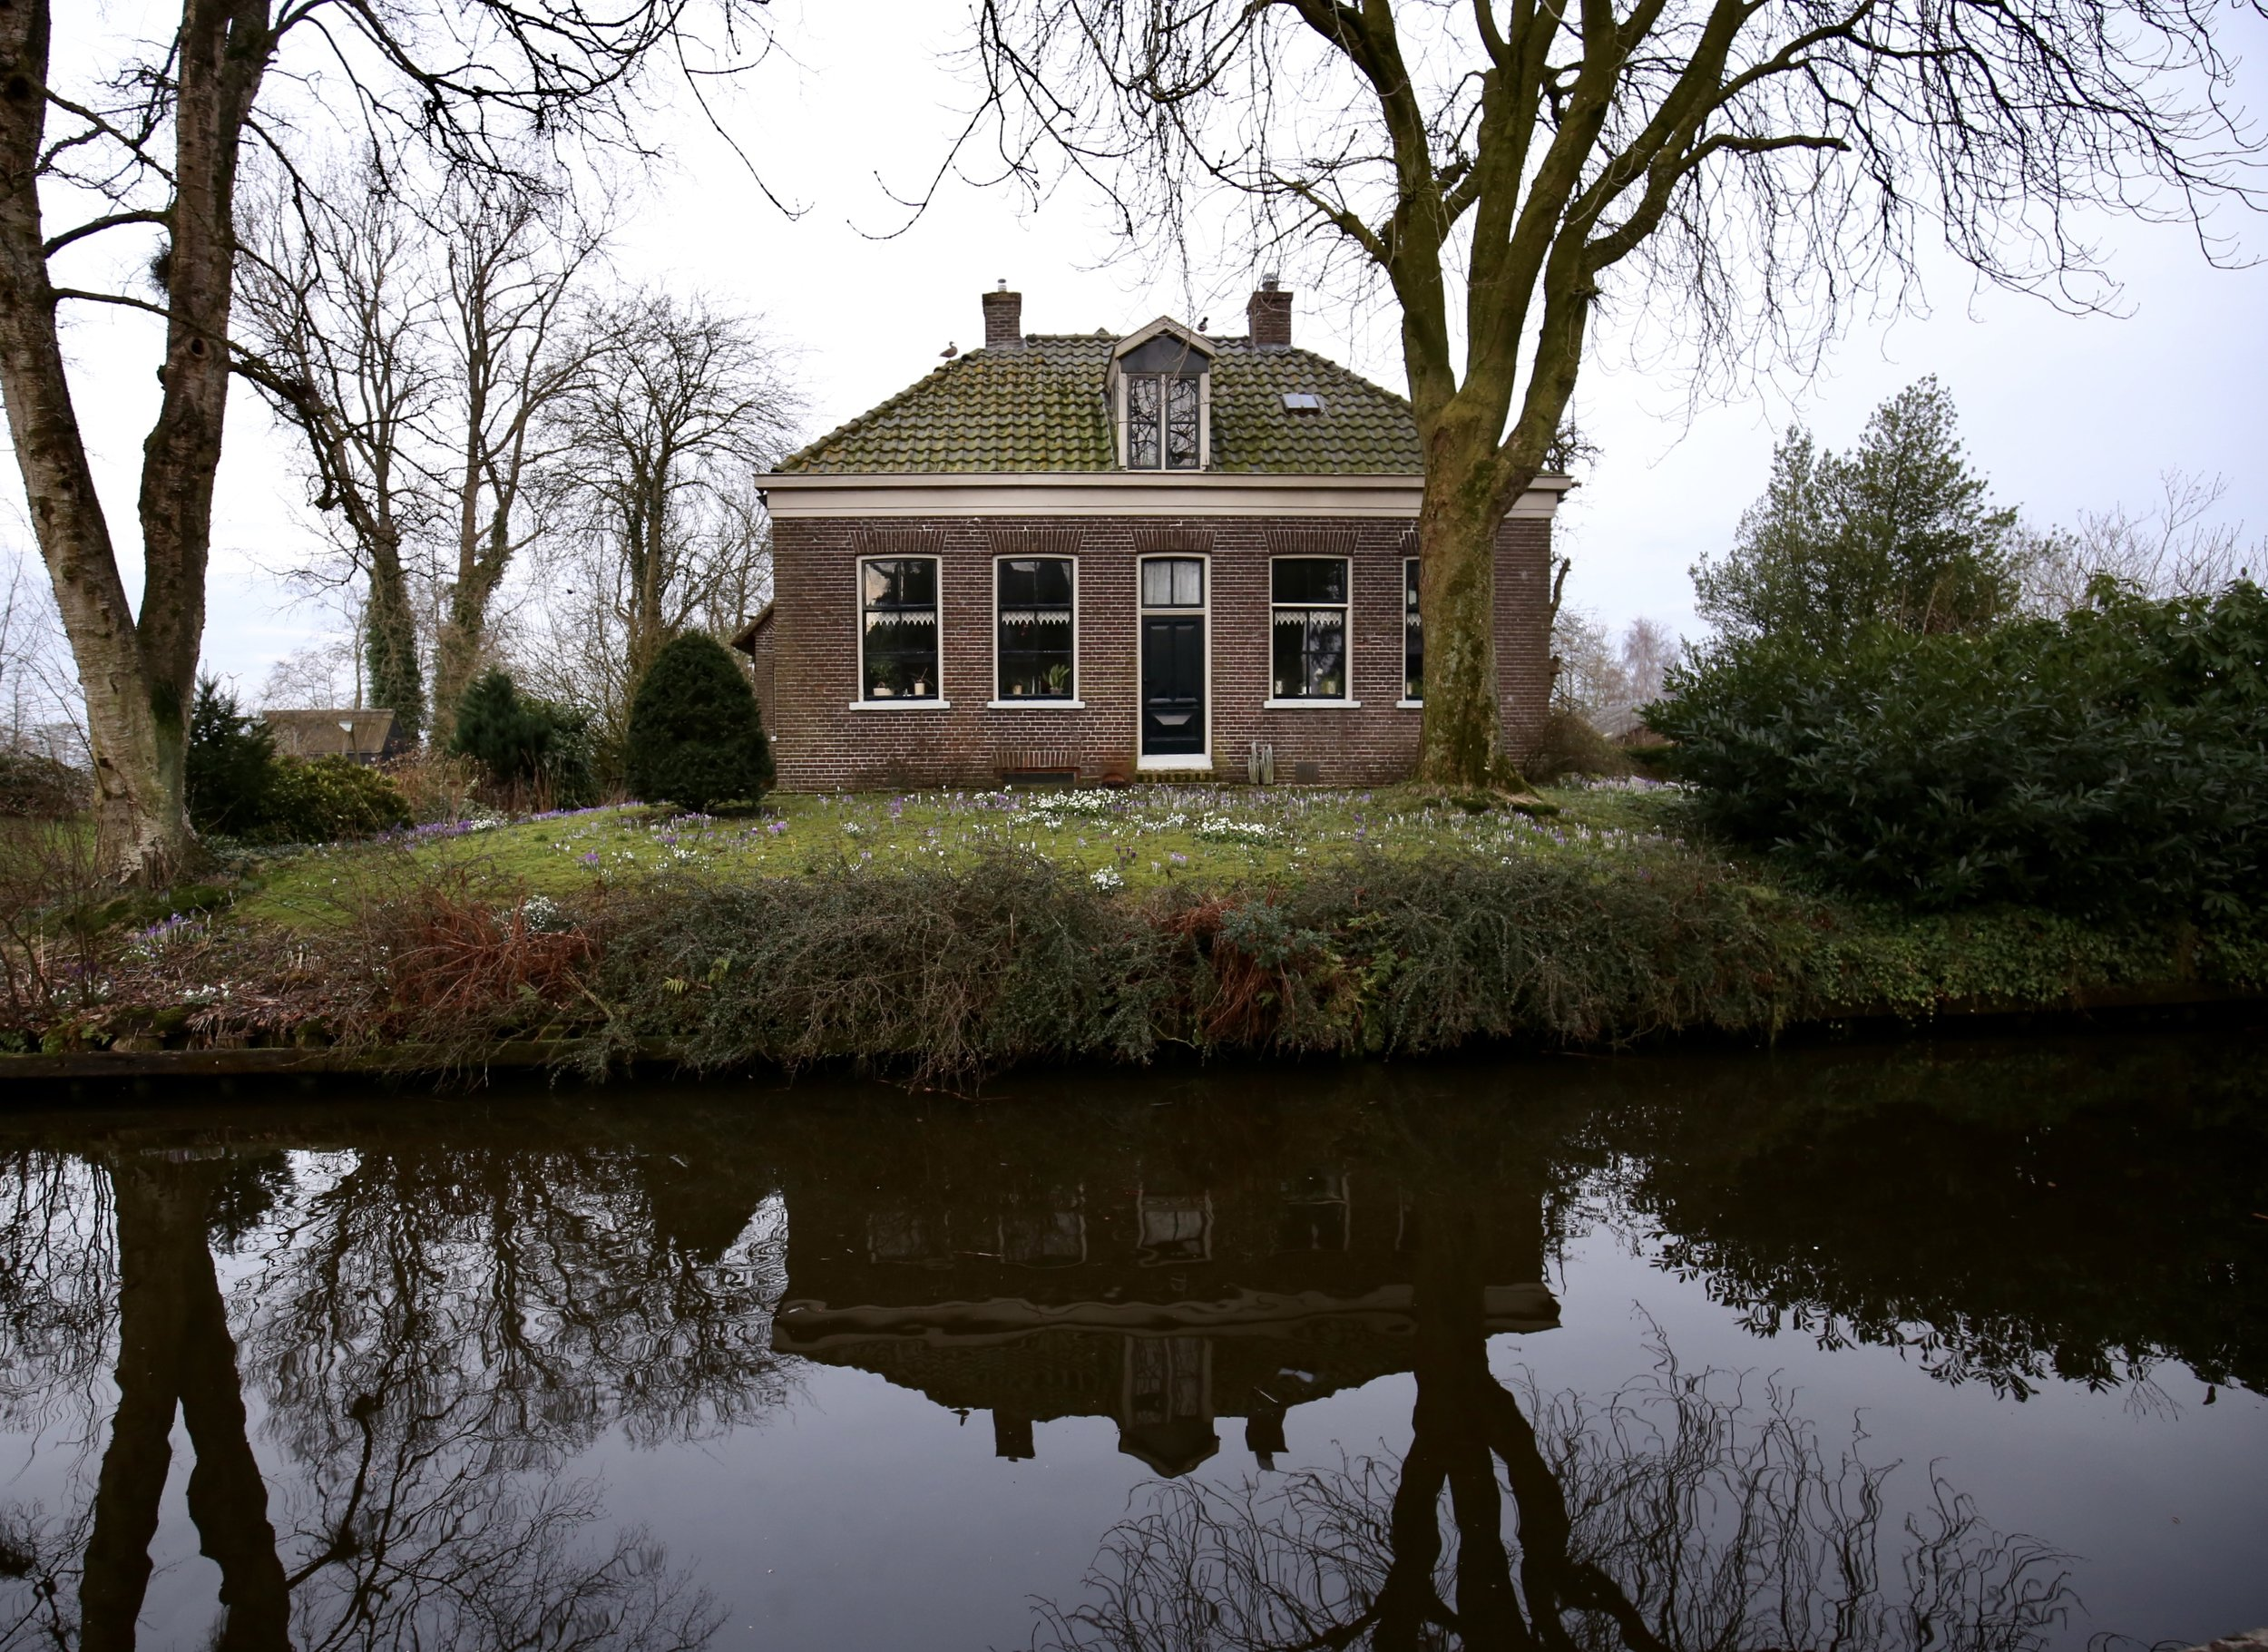 Giethoorn village of canals and water in the Netherlands